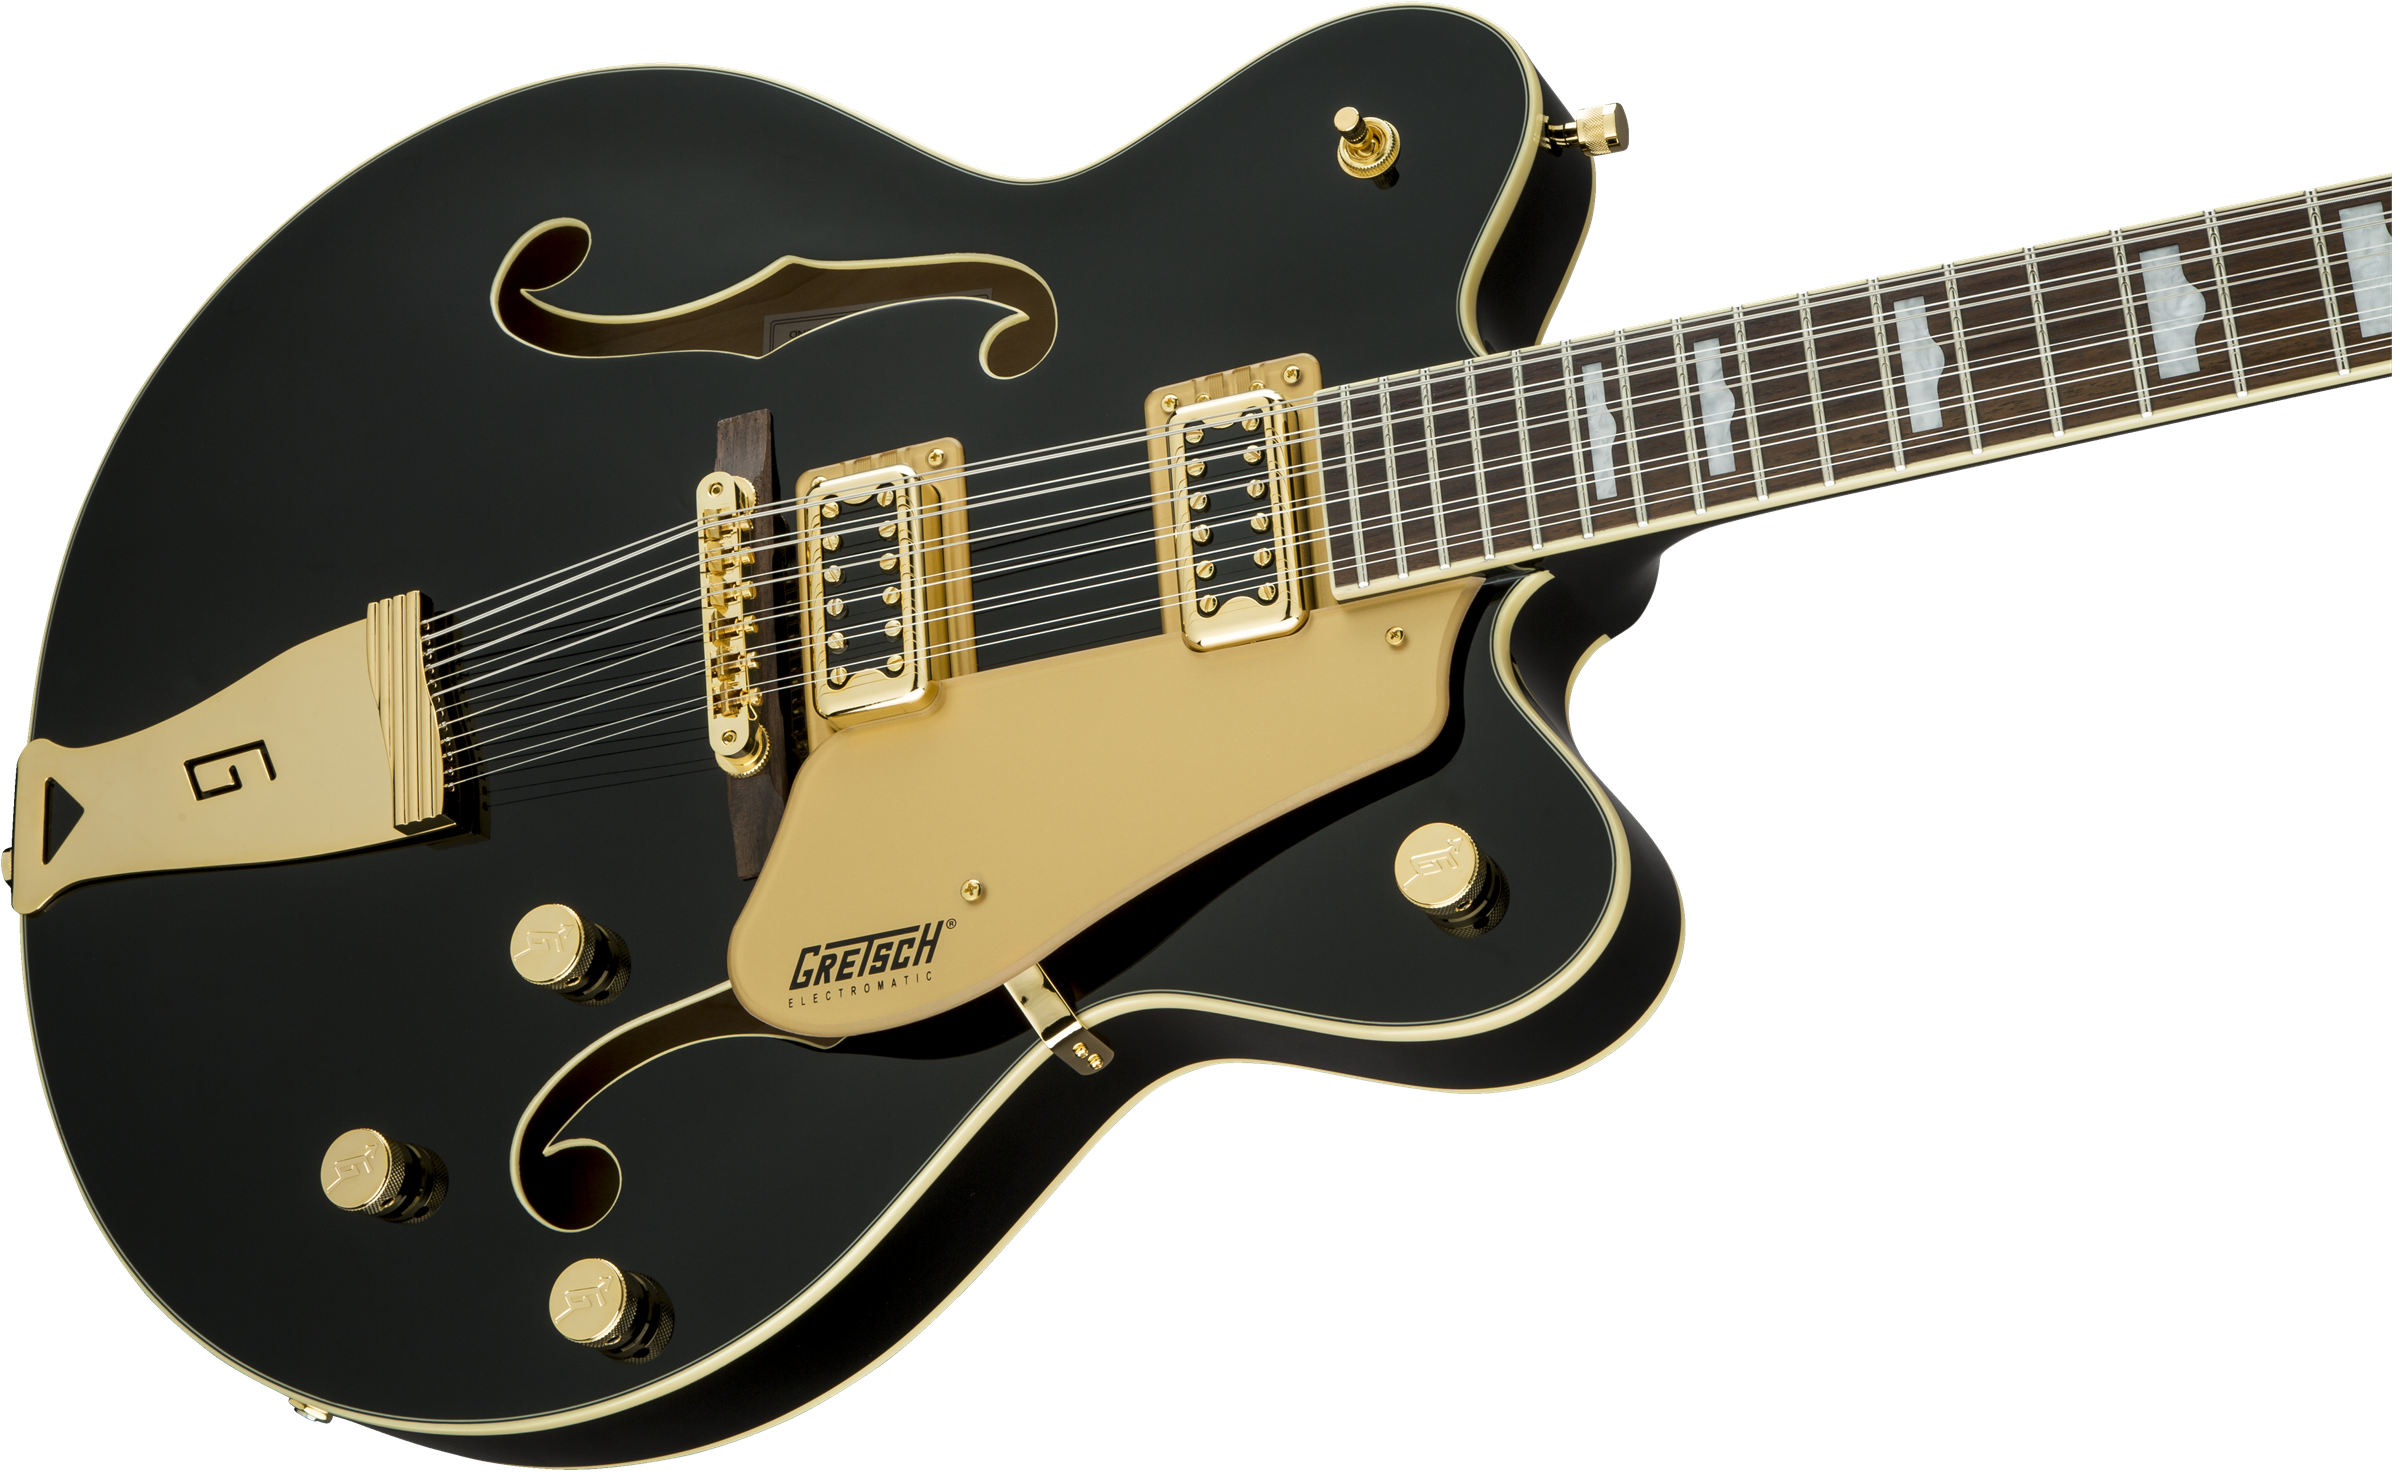 gretsch g5422g 12 electromatic hollow body double cut 12 string gold hardware rosewood neck. Black Bedroom Furniture Sets. Home Design Ideas